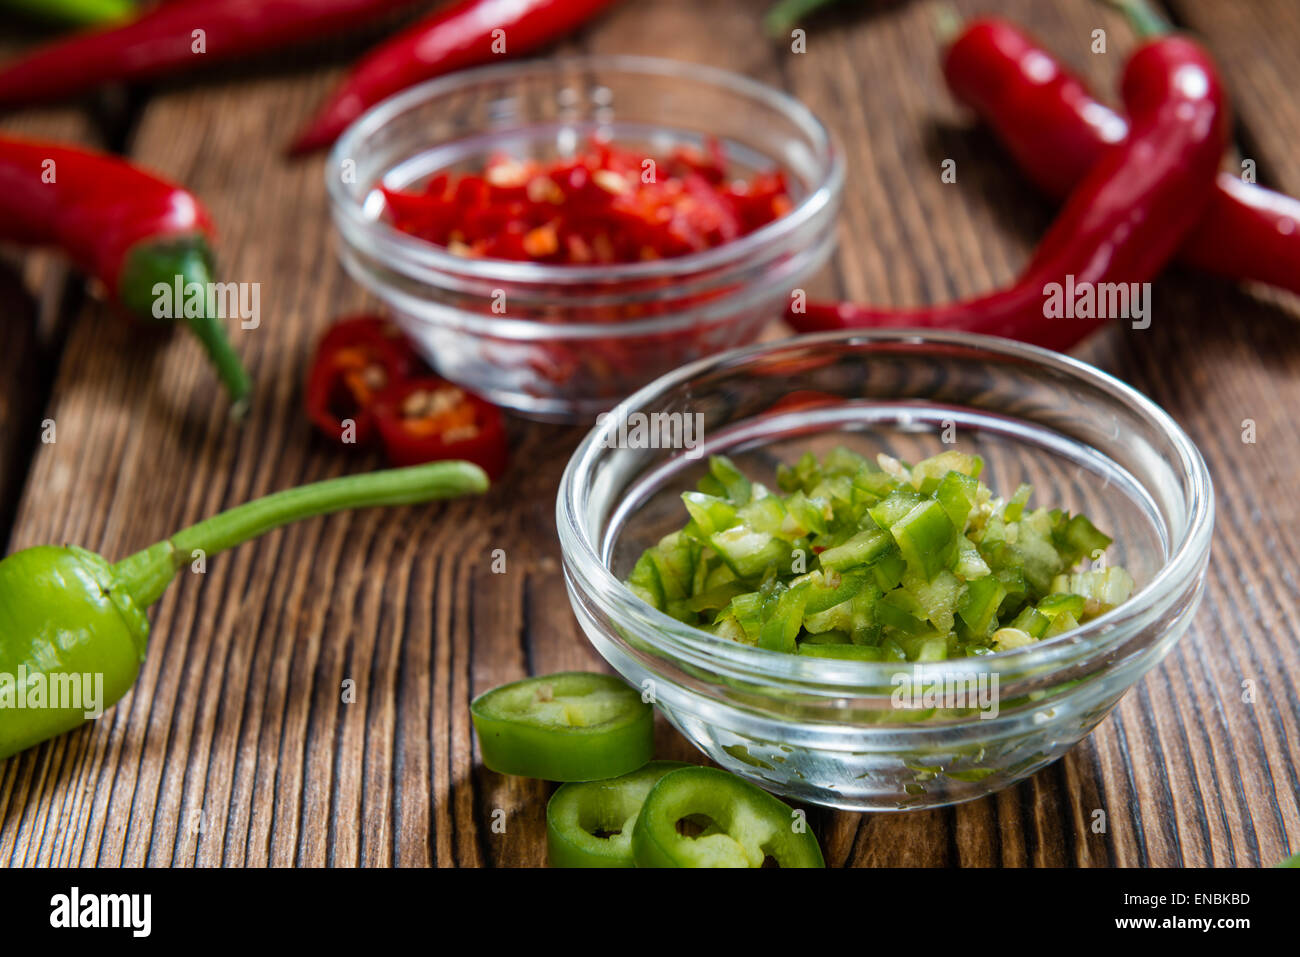 Red and Green Chilis (cutted) on wooden background - Stock Image